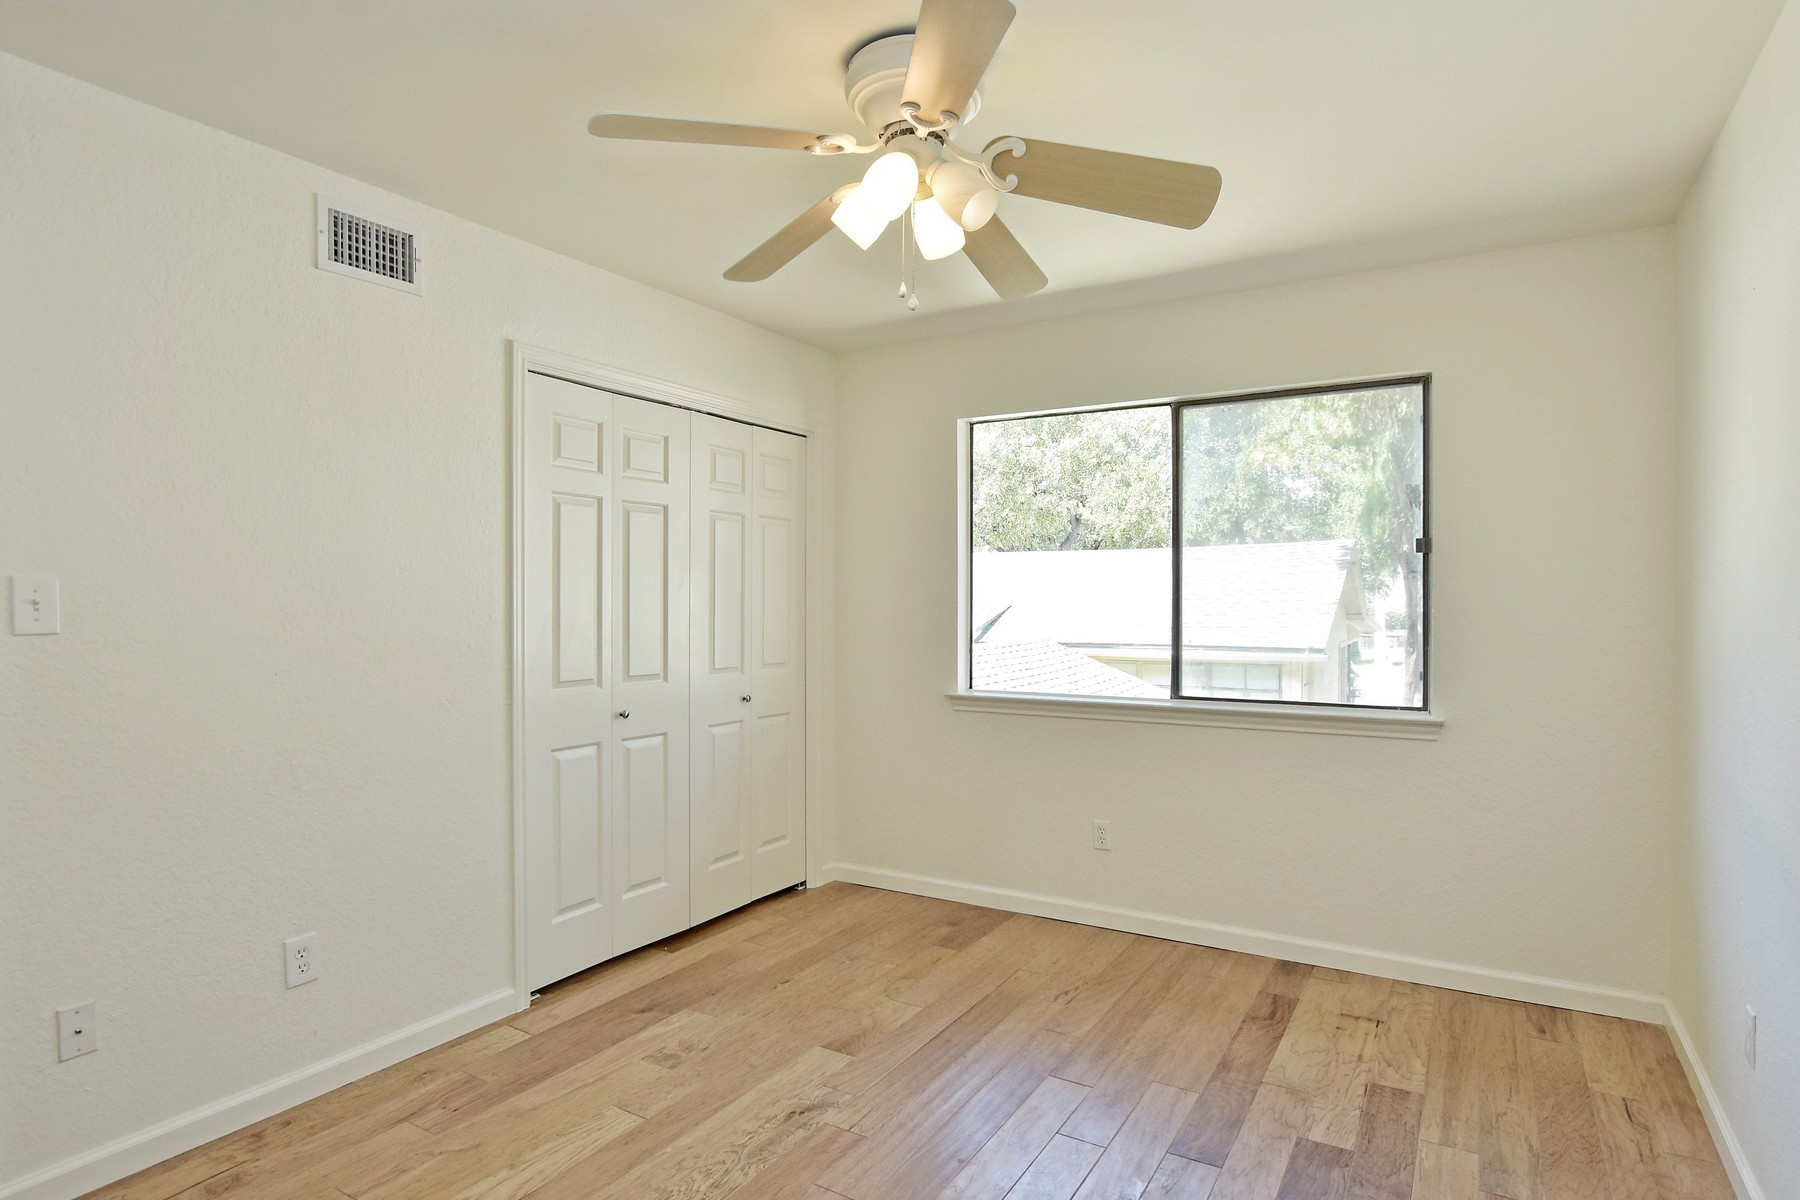 Additional photo for property listing at Renovated Condo in Clarksville 1610 Waterston Ave 12 Austin, Texas 78703 Estados Unidos